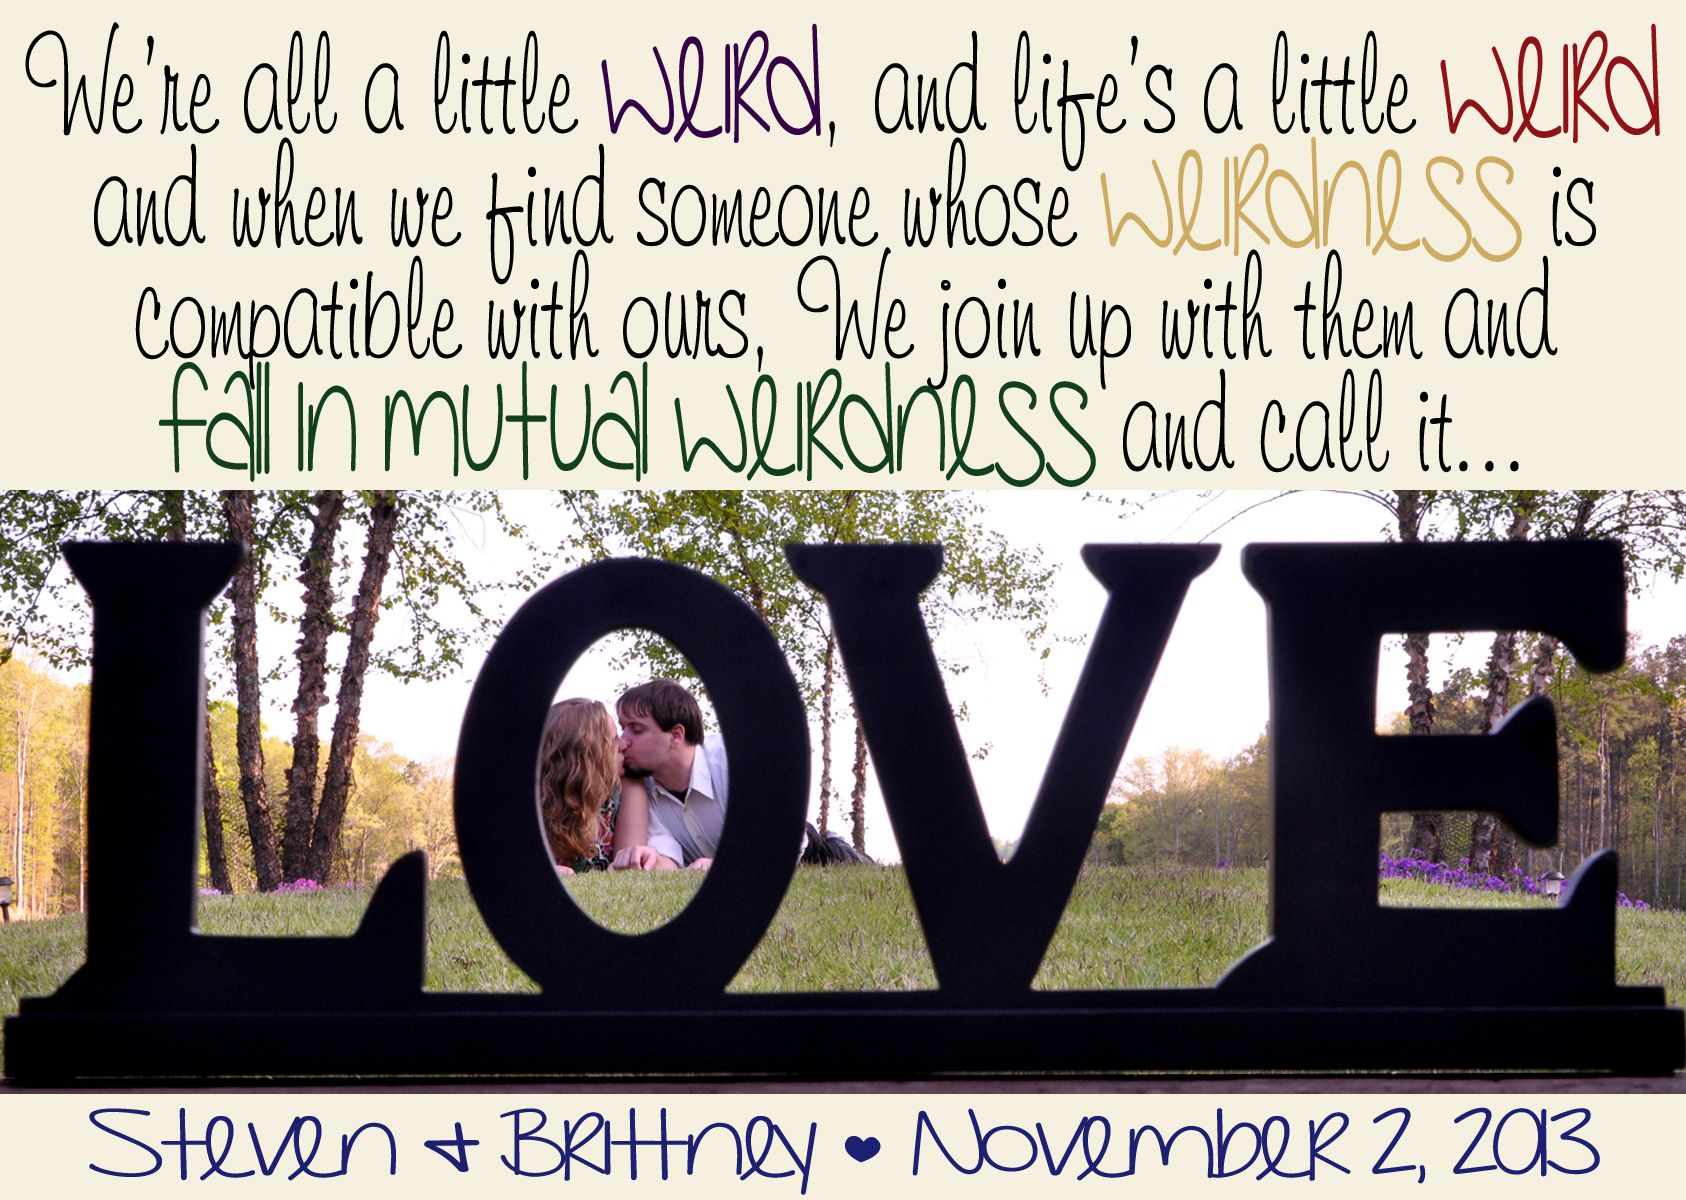 Awesome Wedding Save The Date! Dr. Seuss Quote And Cute Design!